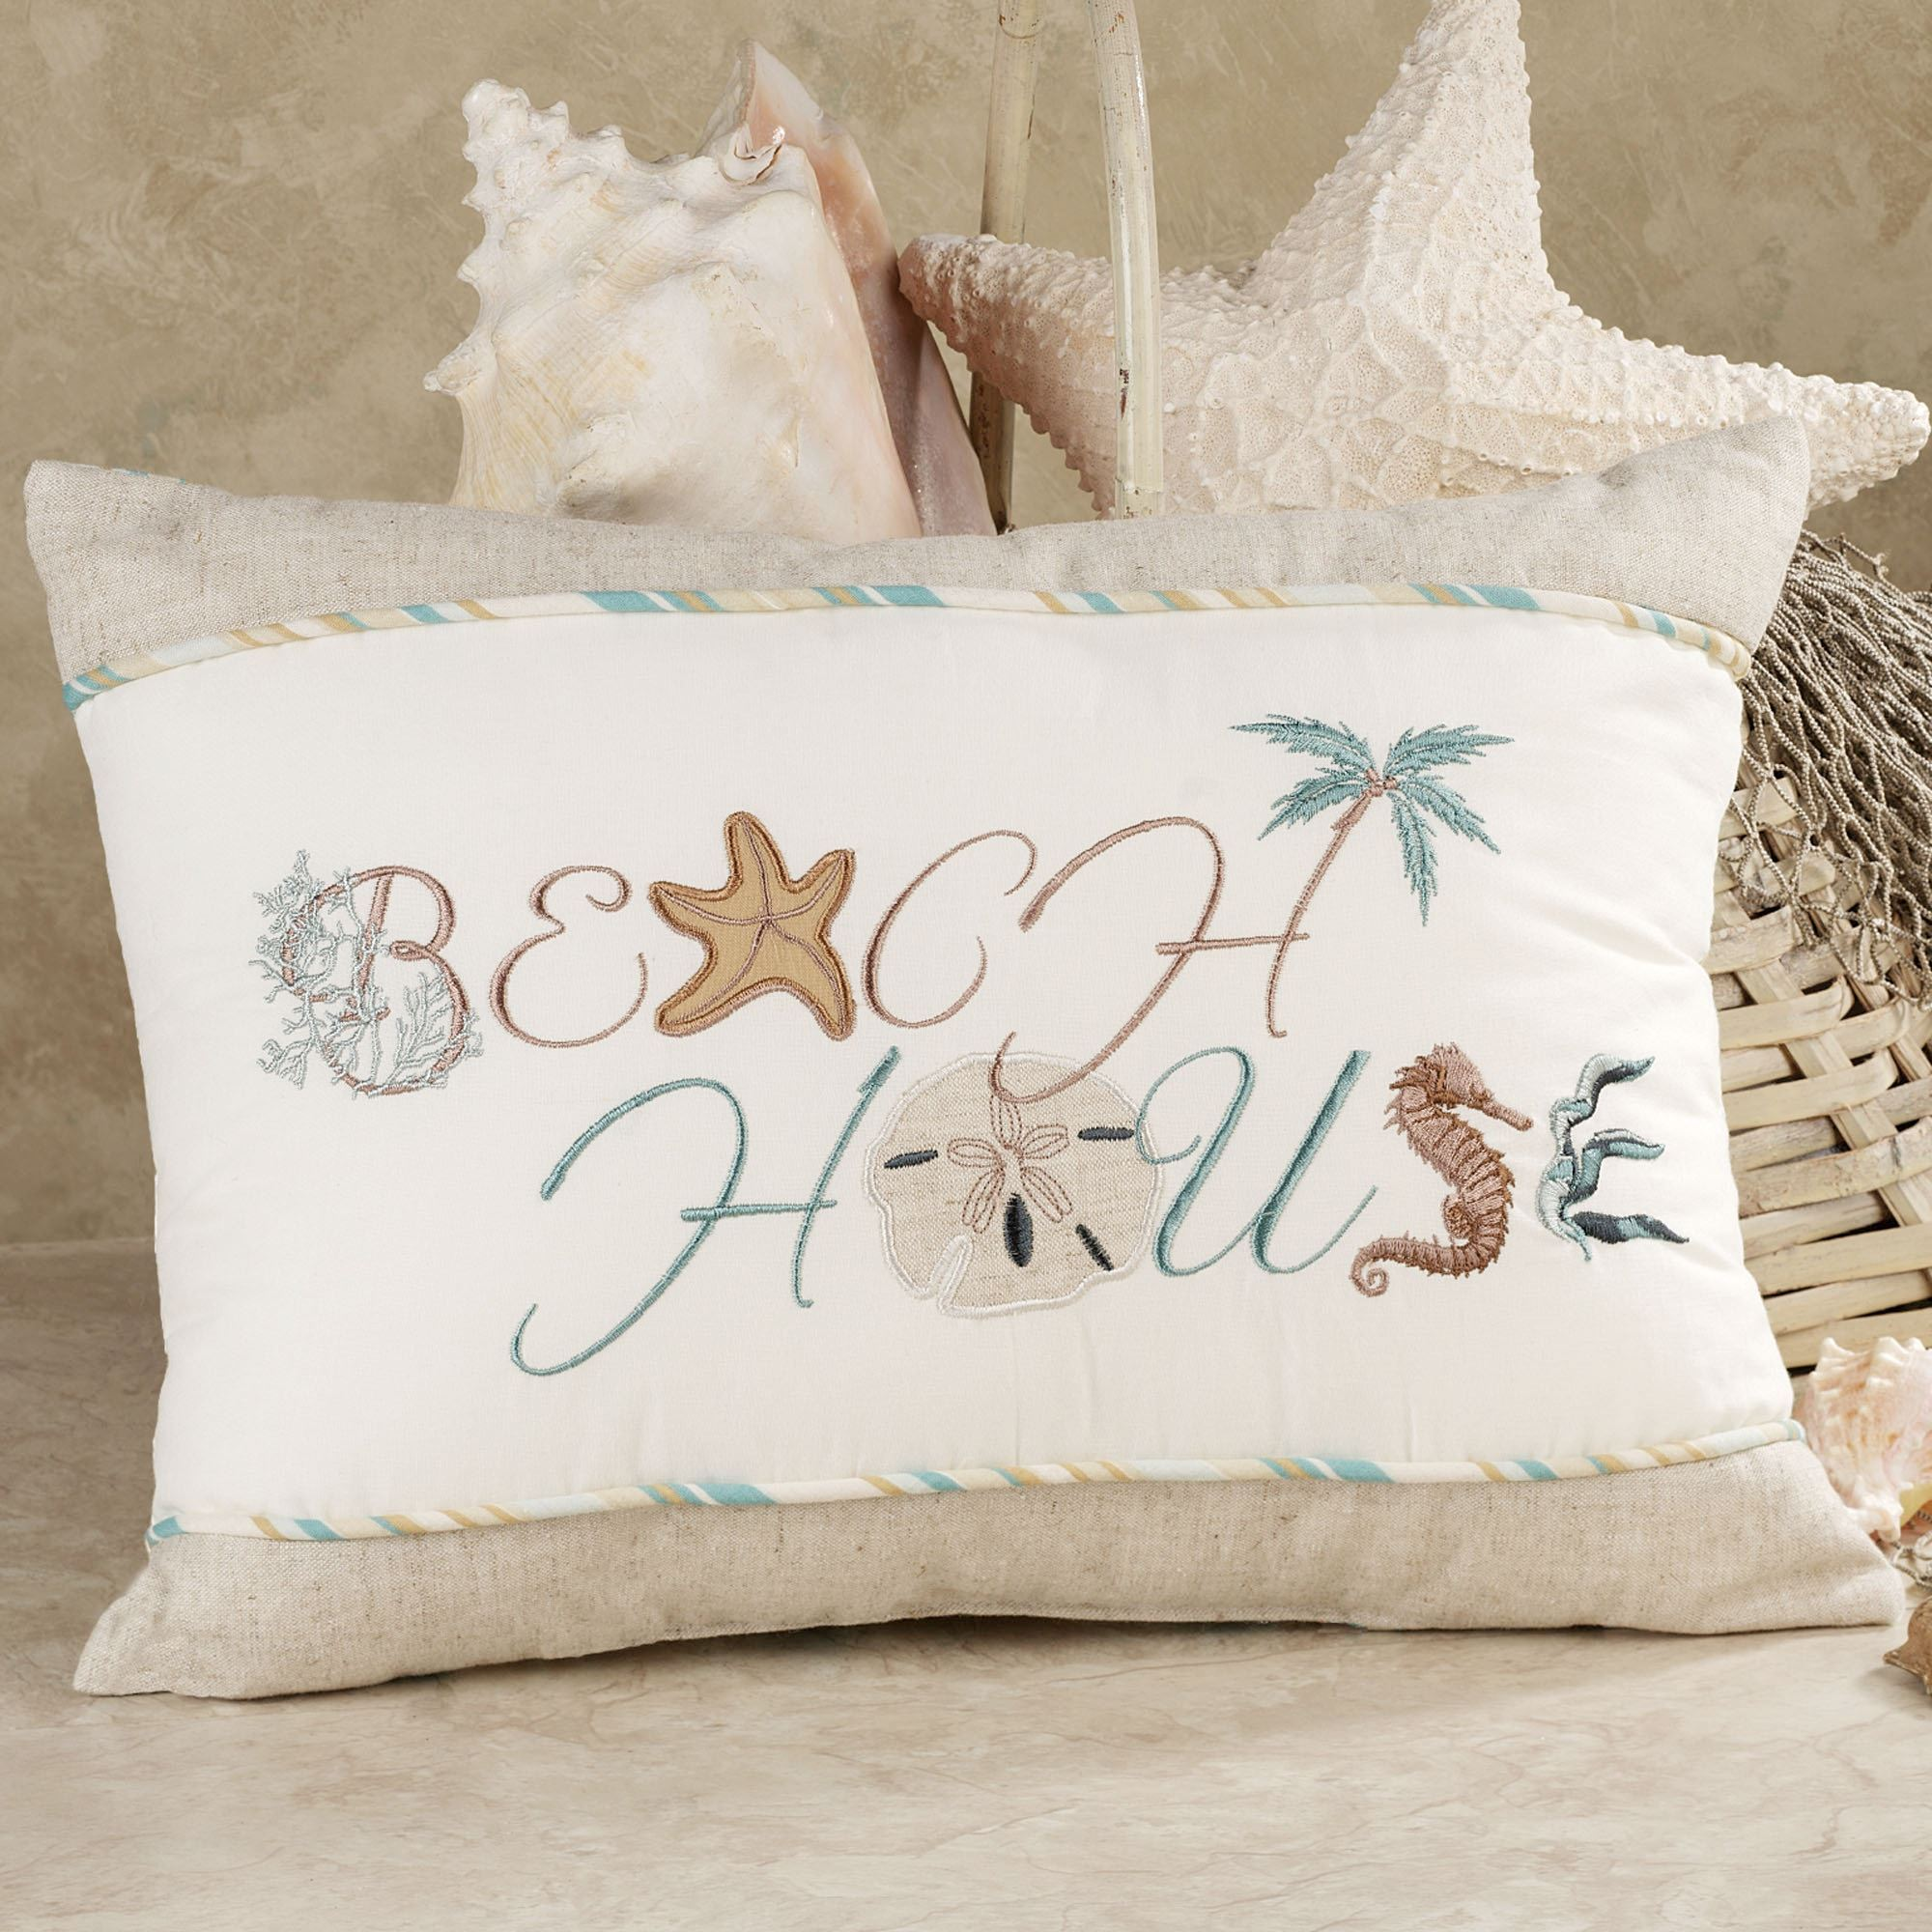 out code pillows ocean pillow see that throw card printed seller the top inspiration of small decor with gallery it beach decorative ideas on